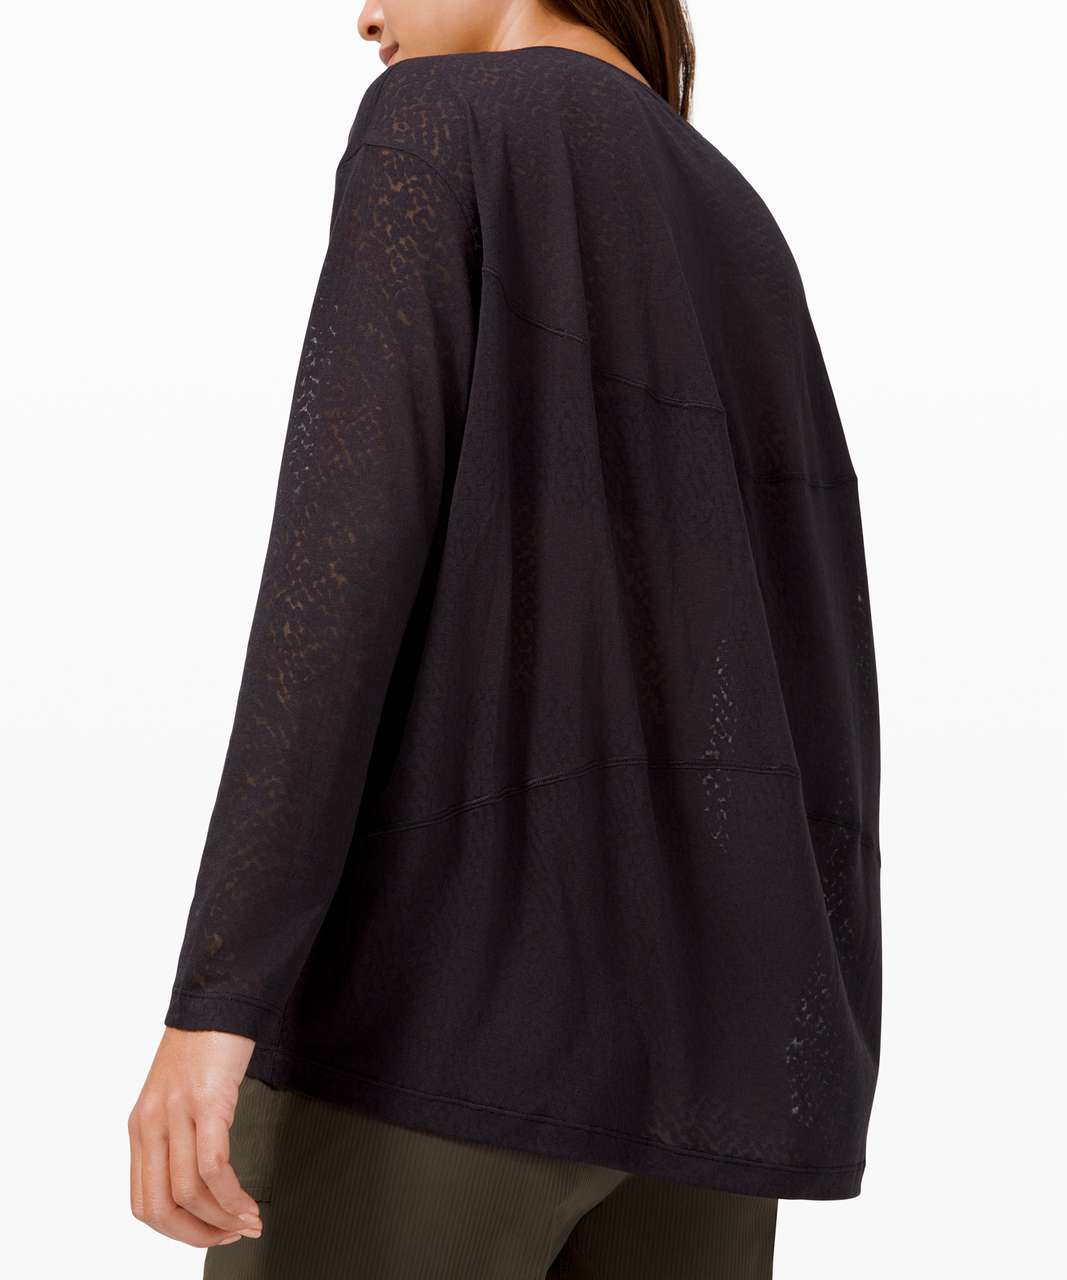 Lululemon Back In Action Long Sleeve *Veil - Black